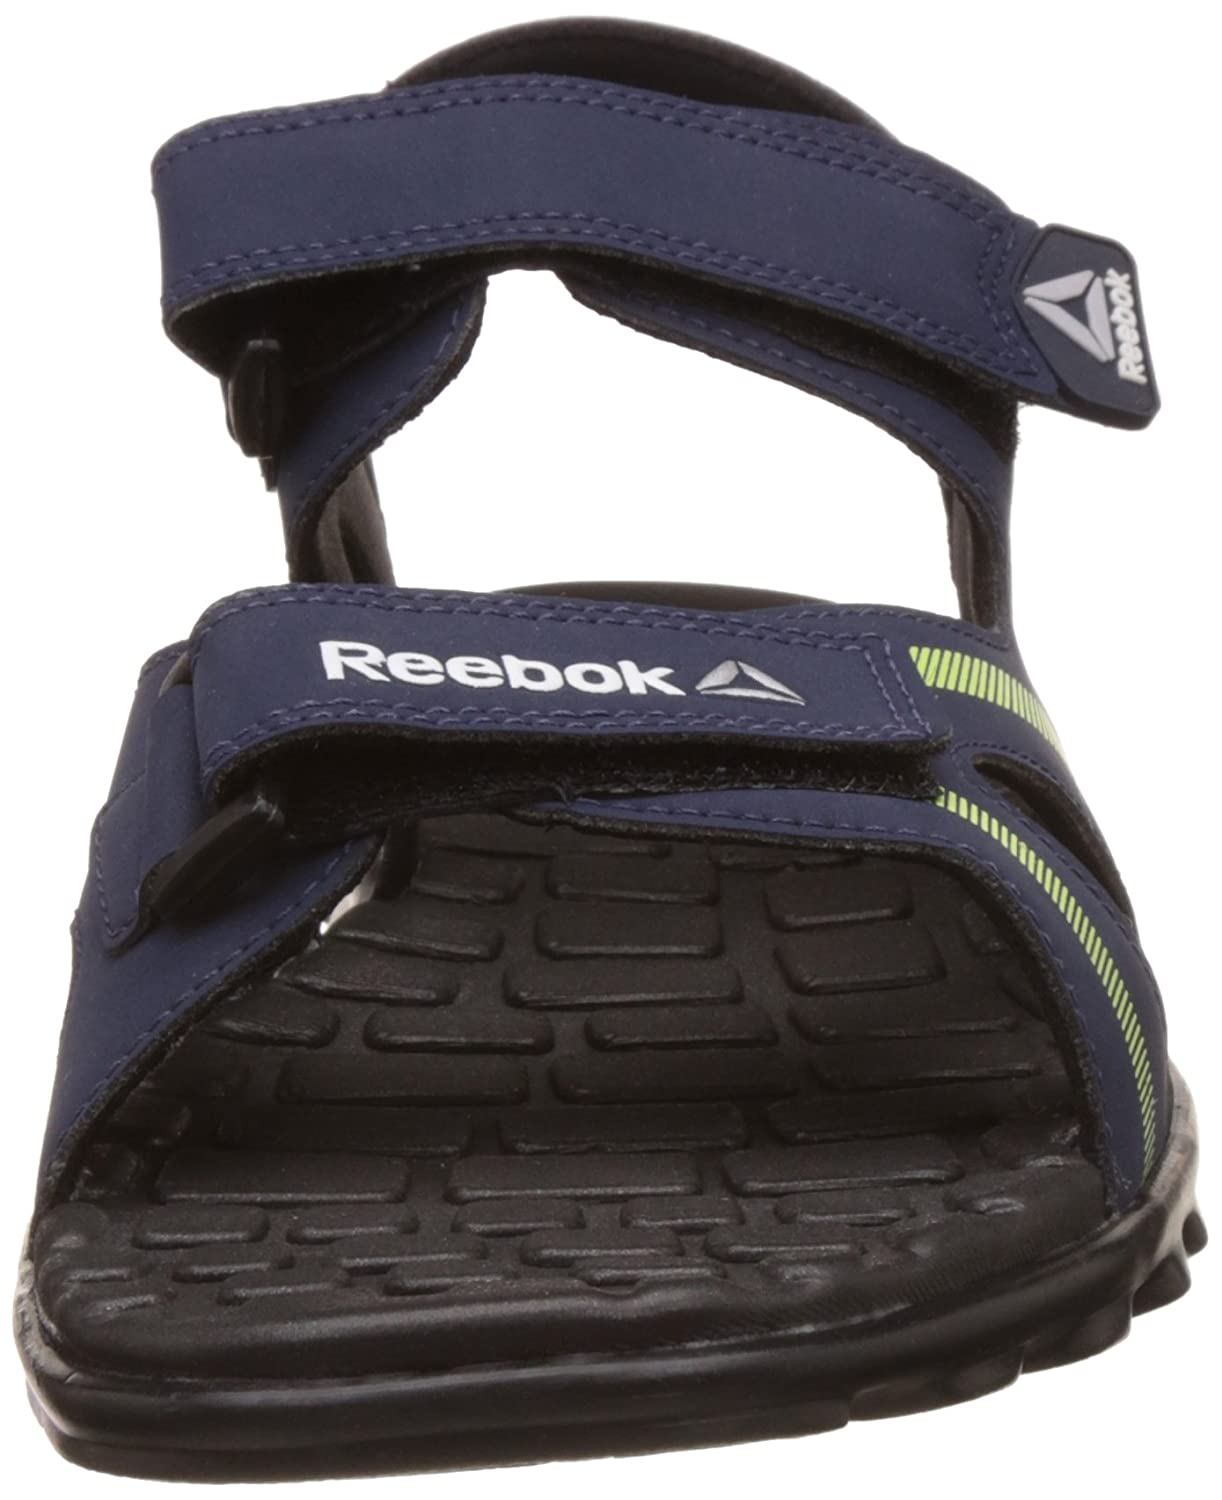 d46ad6159735e Reebok Men s Maze Flex Sandals and Floaters  Buy Online at Low Prices in  India - Amazon.in